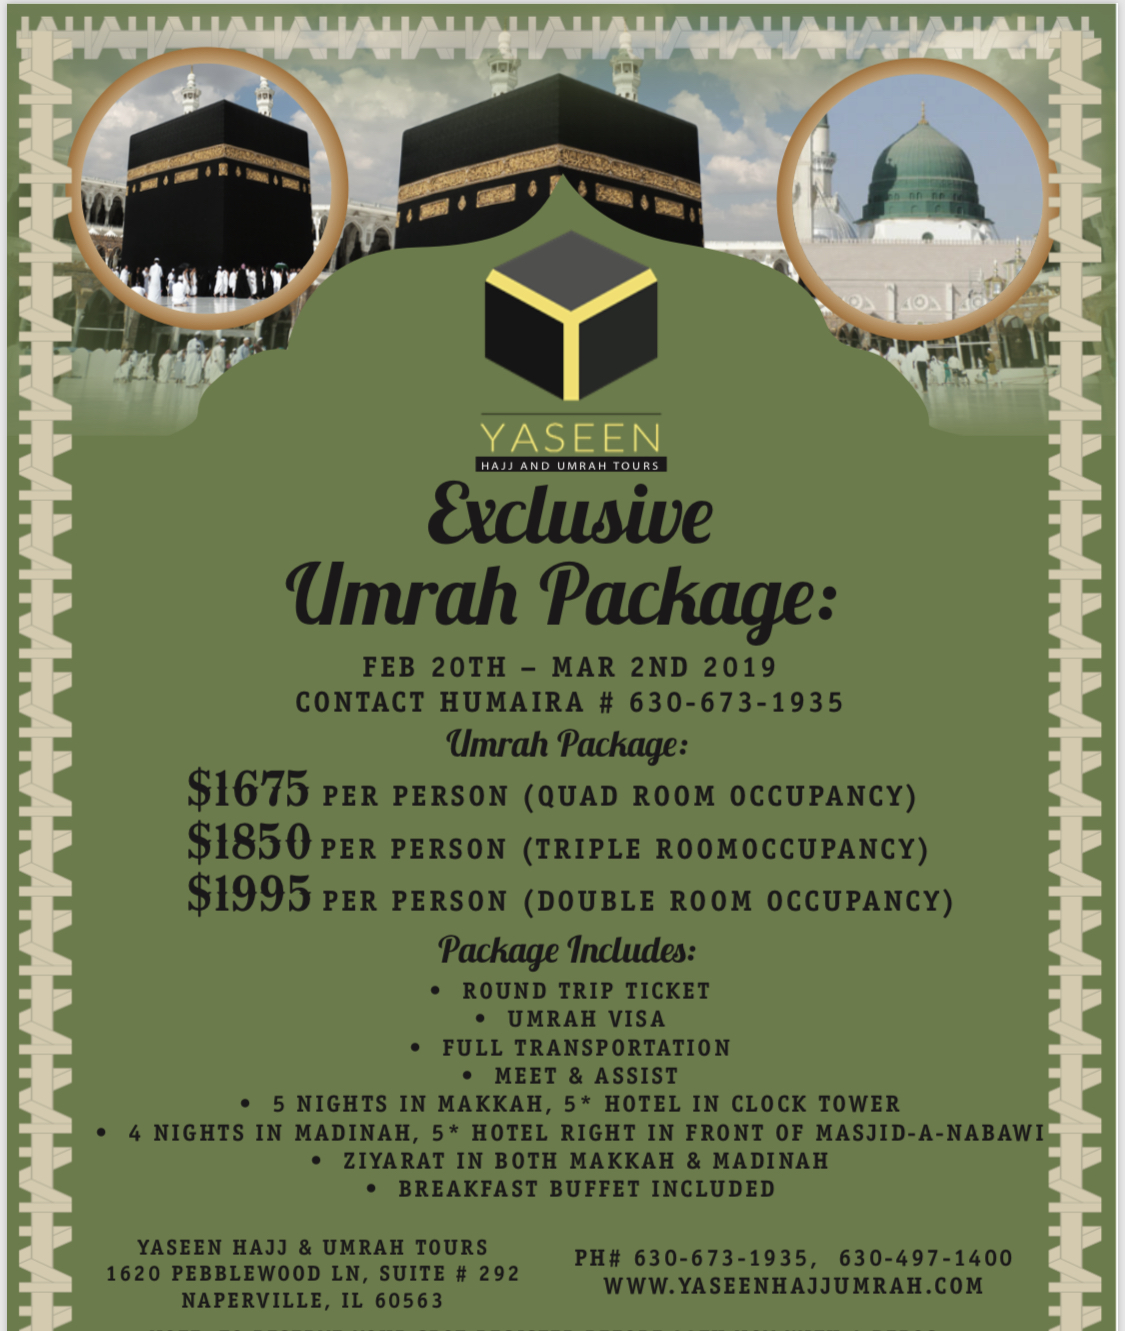 Umrah Package | Yaseen Hajj & Umrah Tours - Special Packages